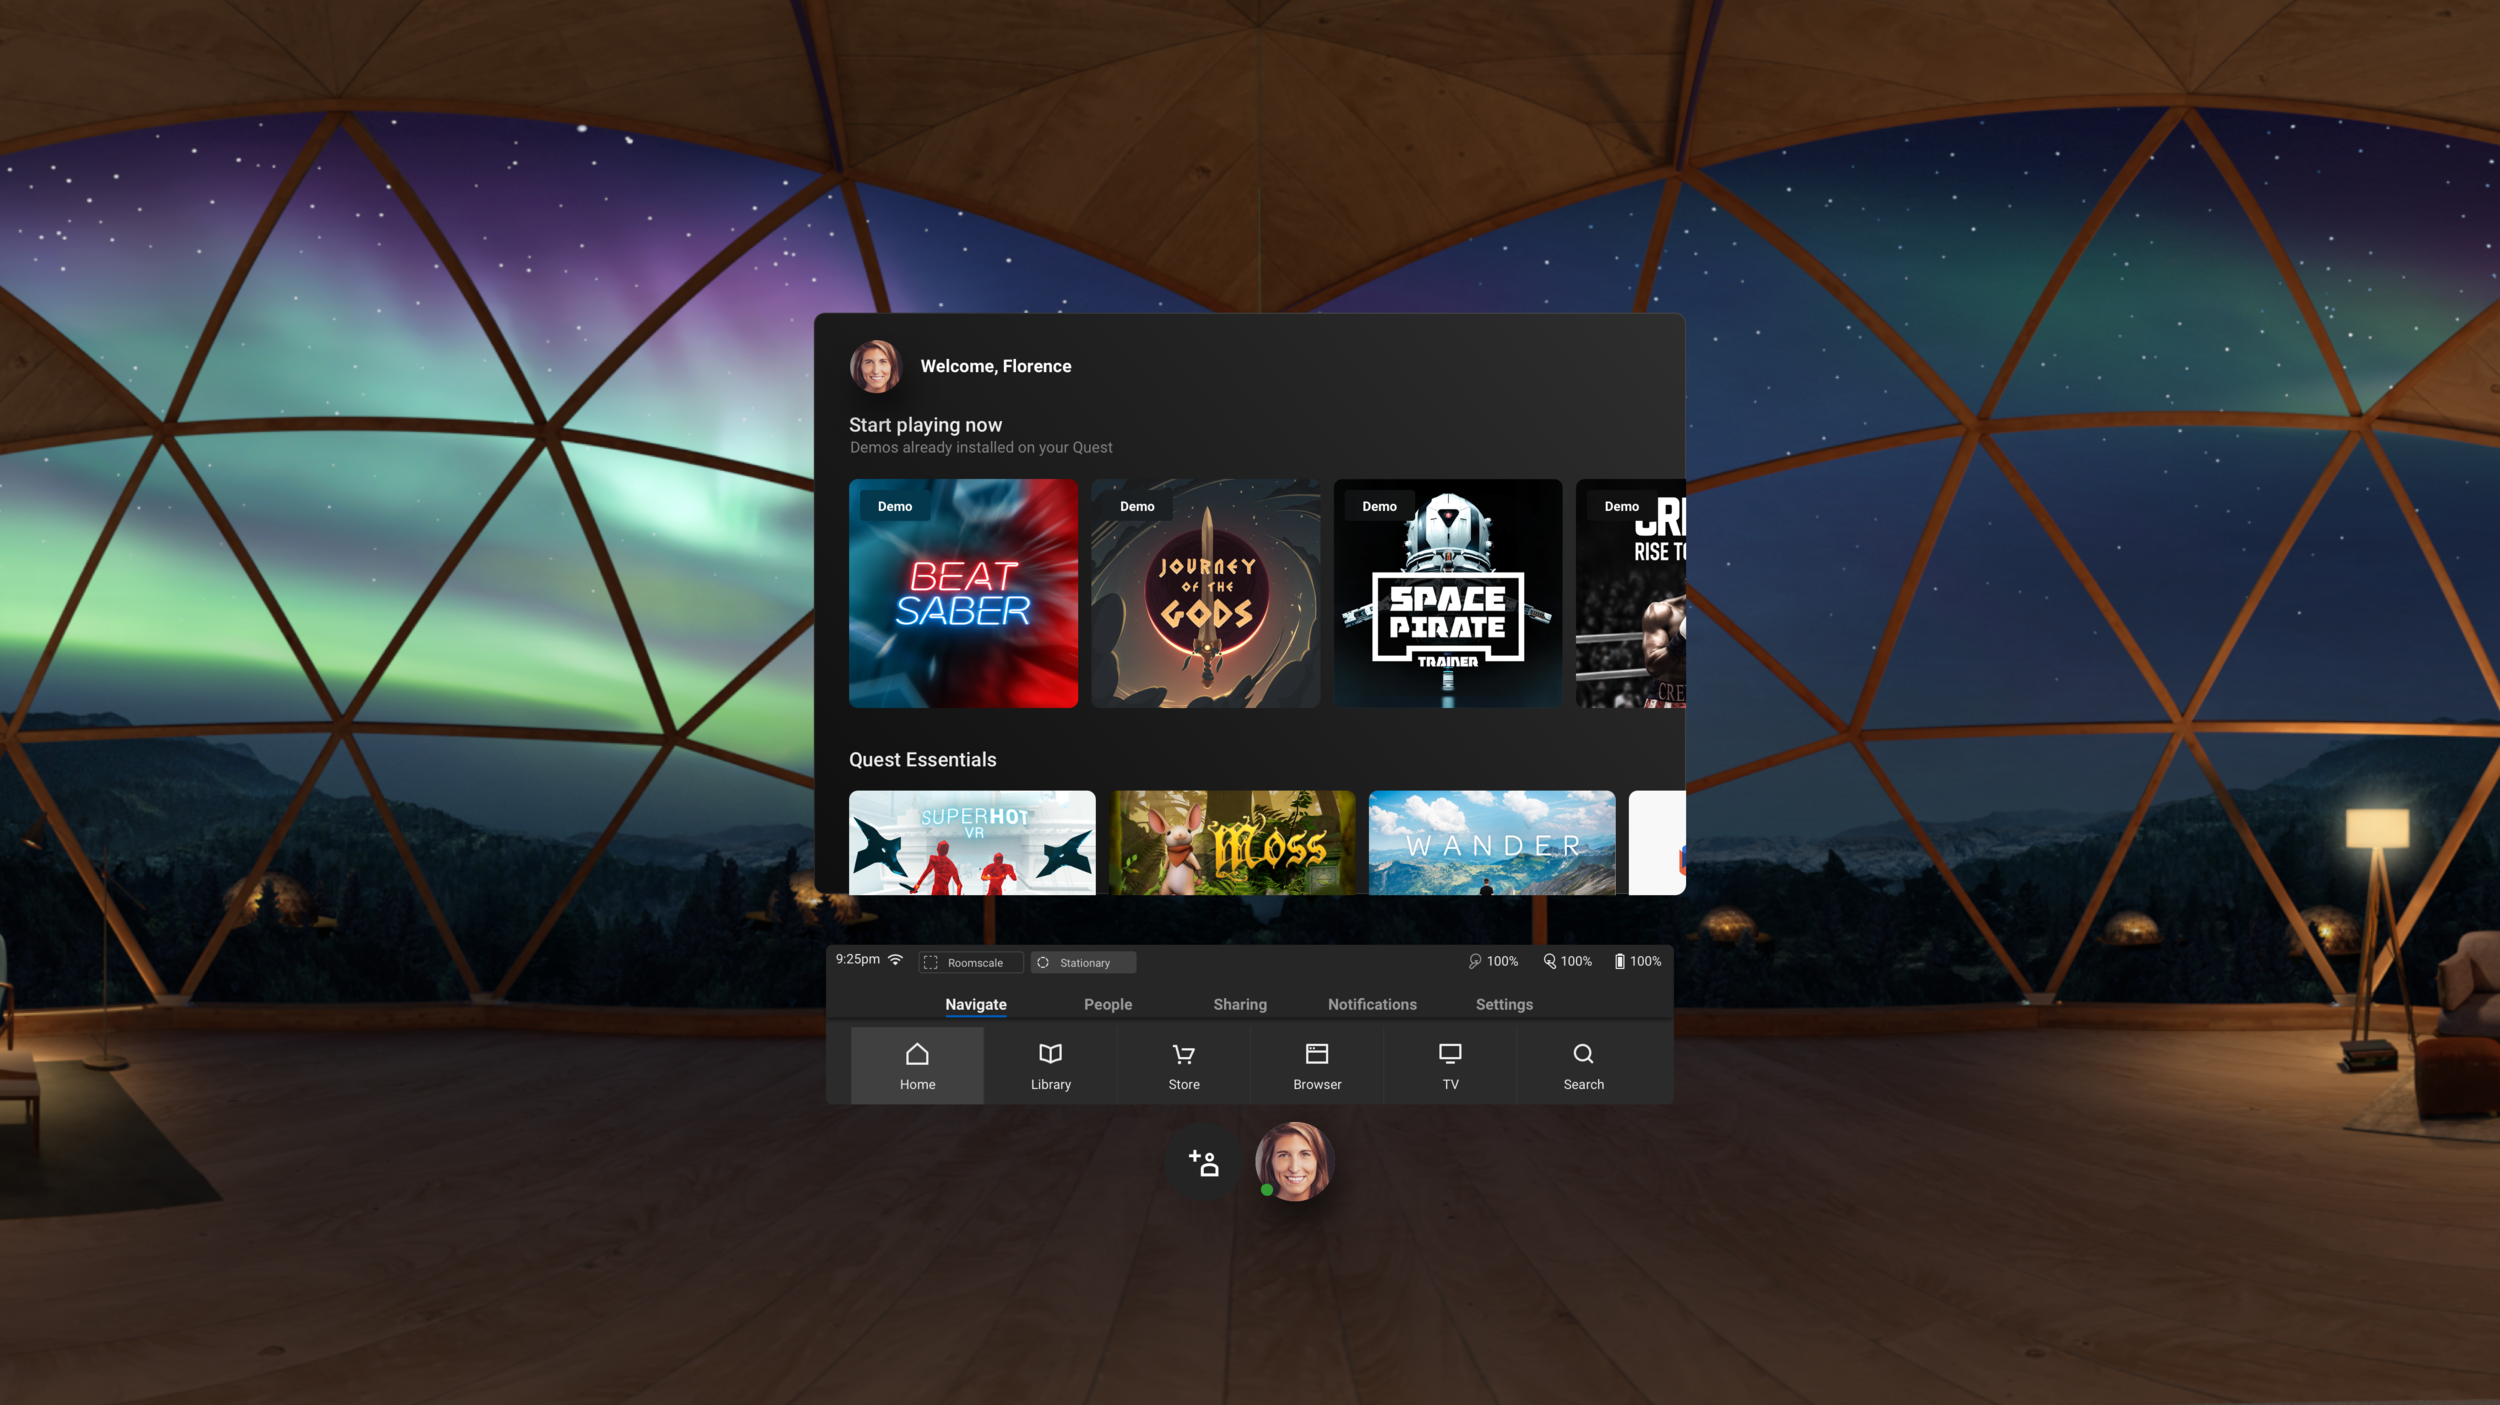 The Oculus Quest home screen with linked store profile bottom center.